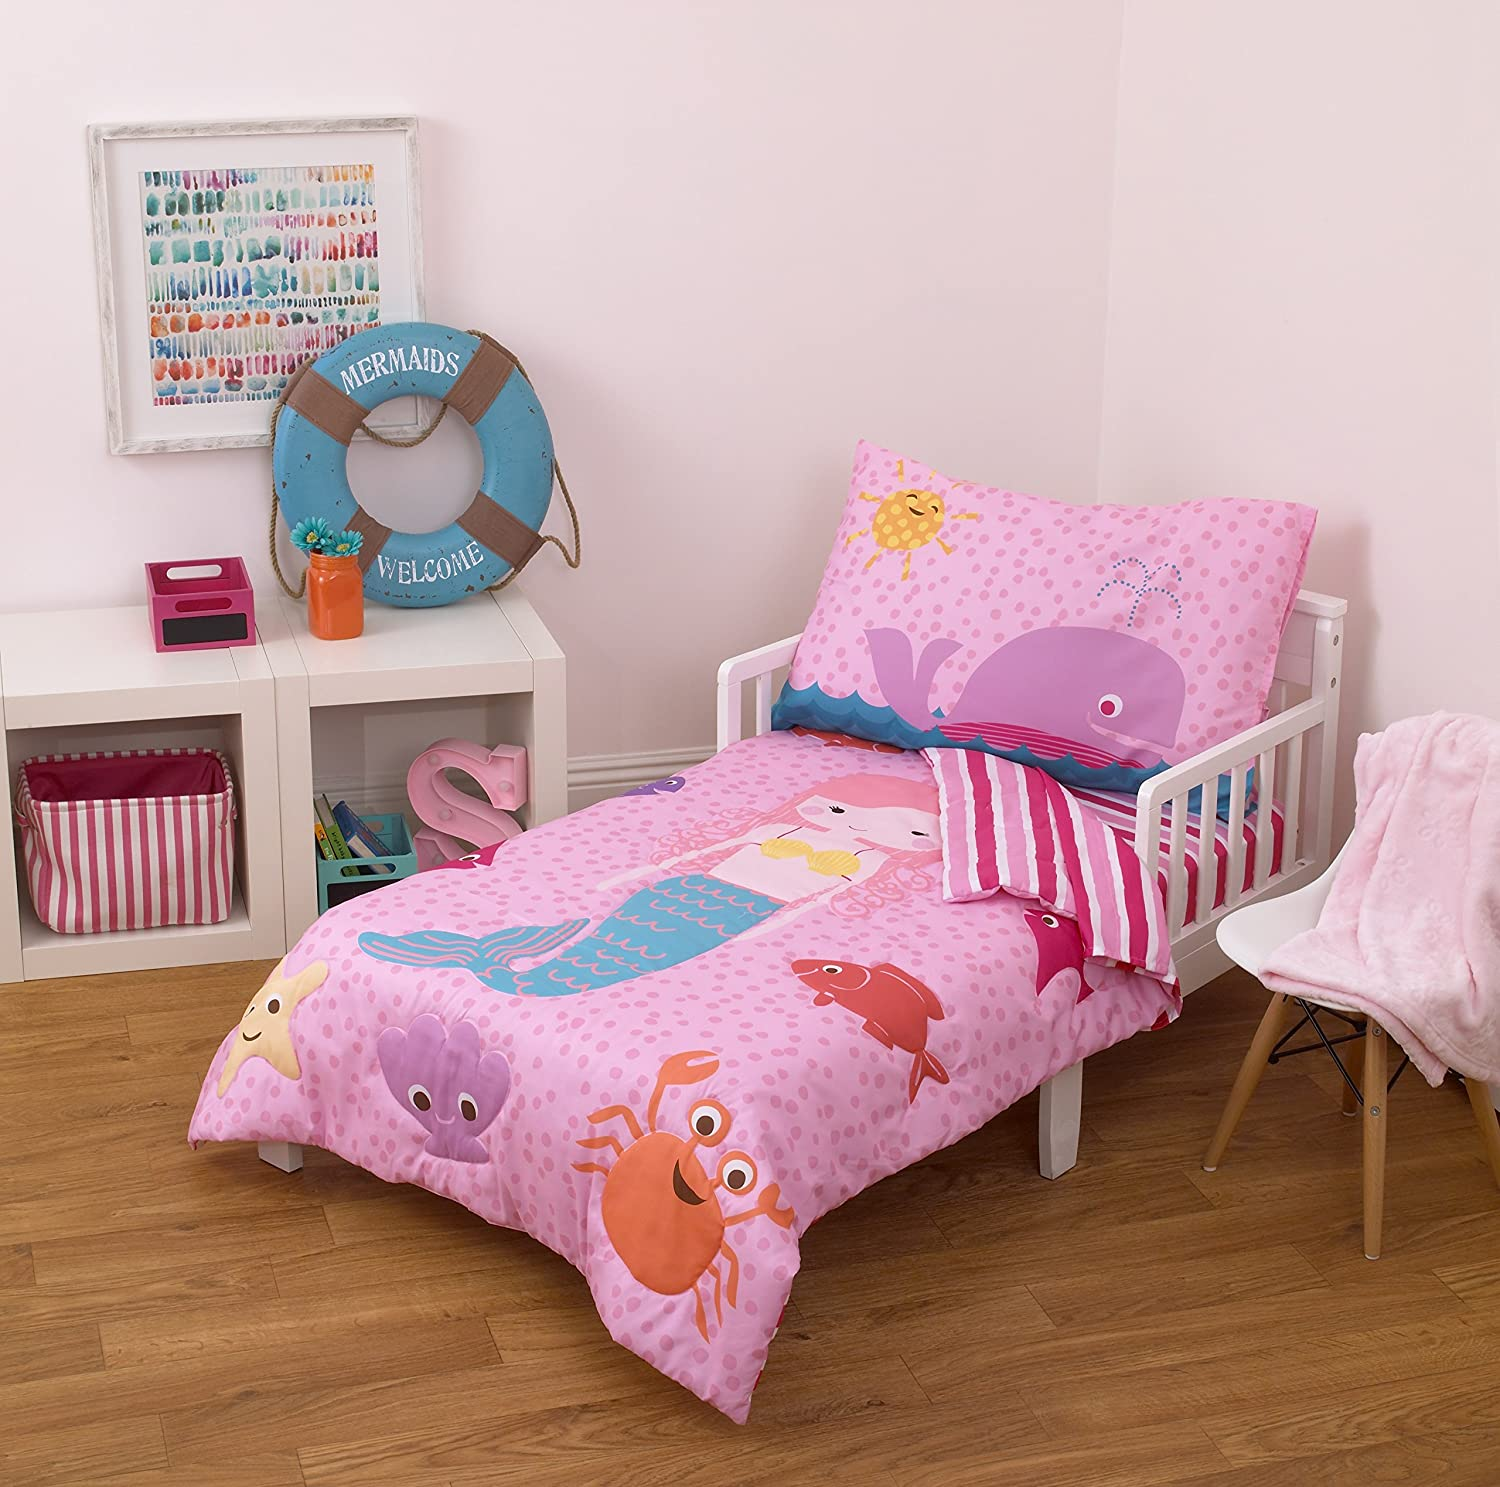 pink toddler bedroom toddler bedding set mermaid whale fish nautical pink 4 12889